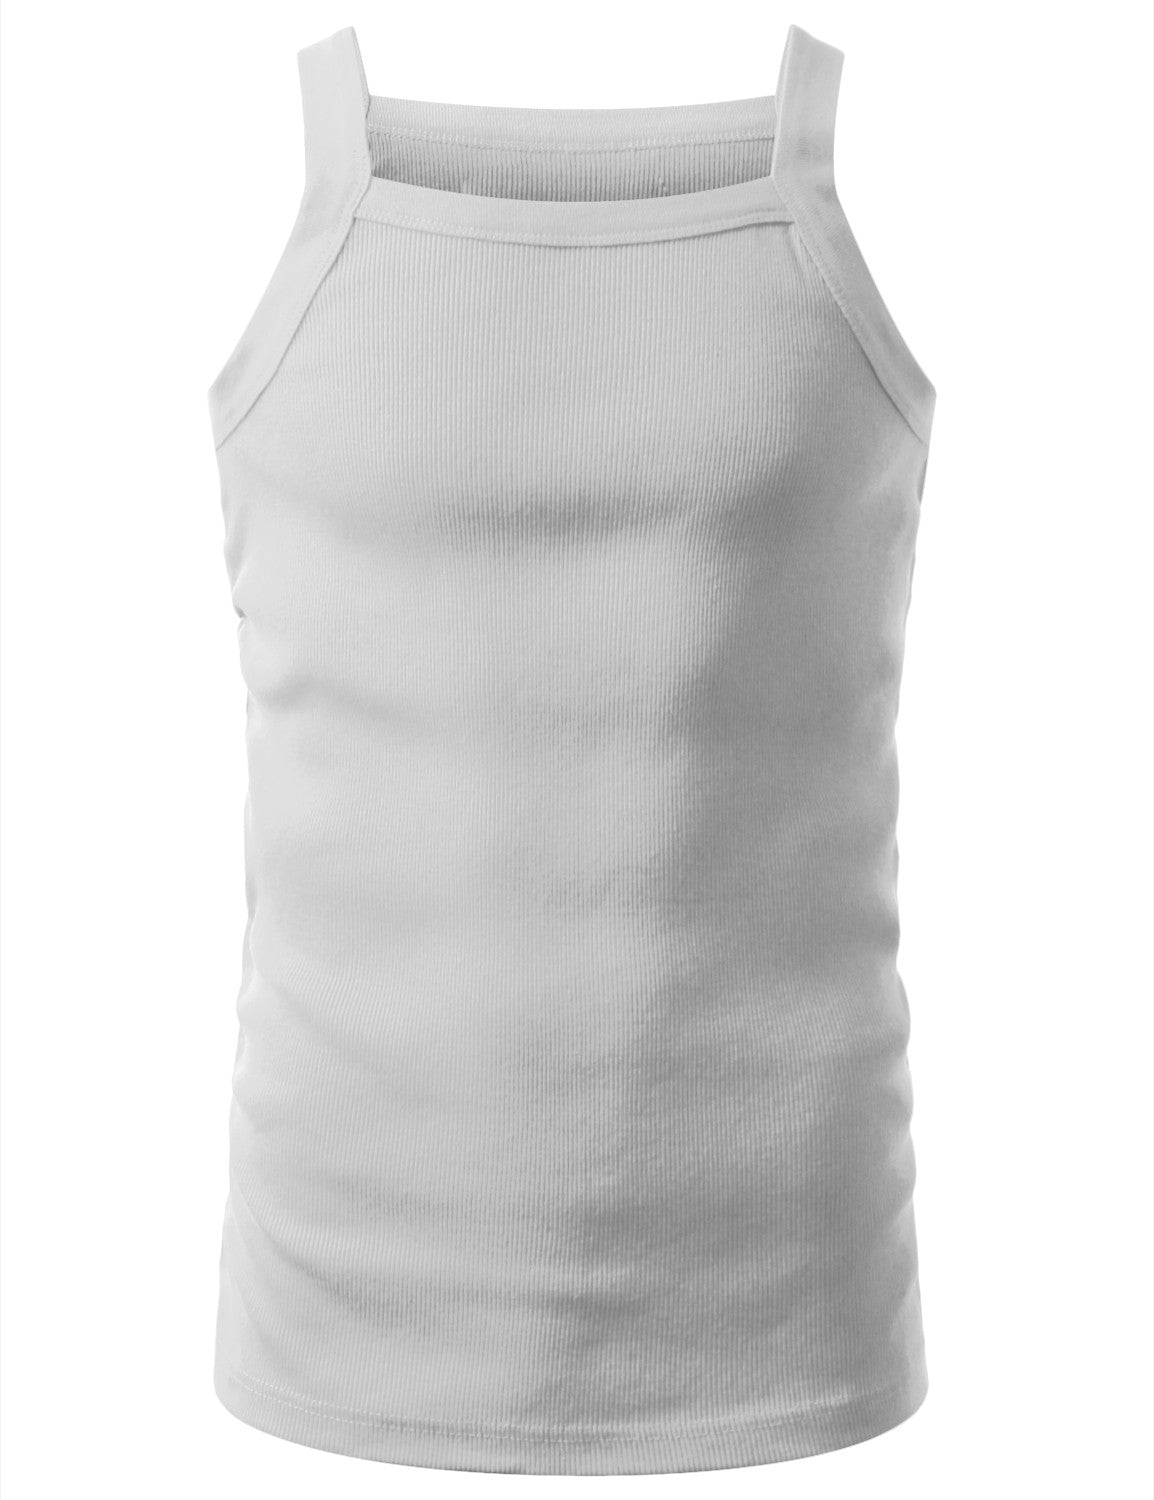 WHITE SQUARE NECK TANK TOP